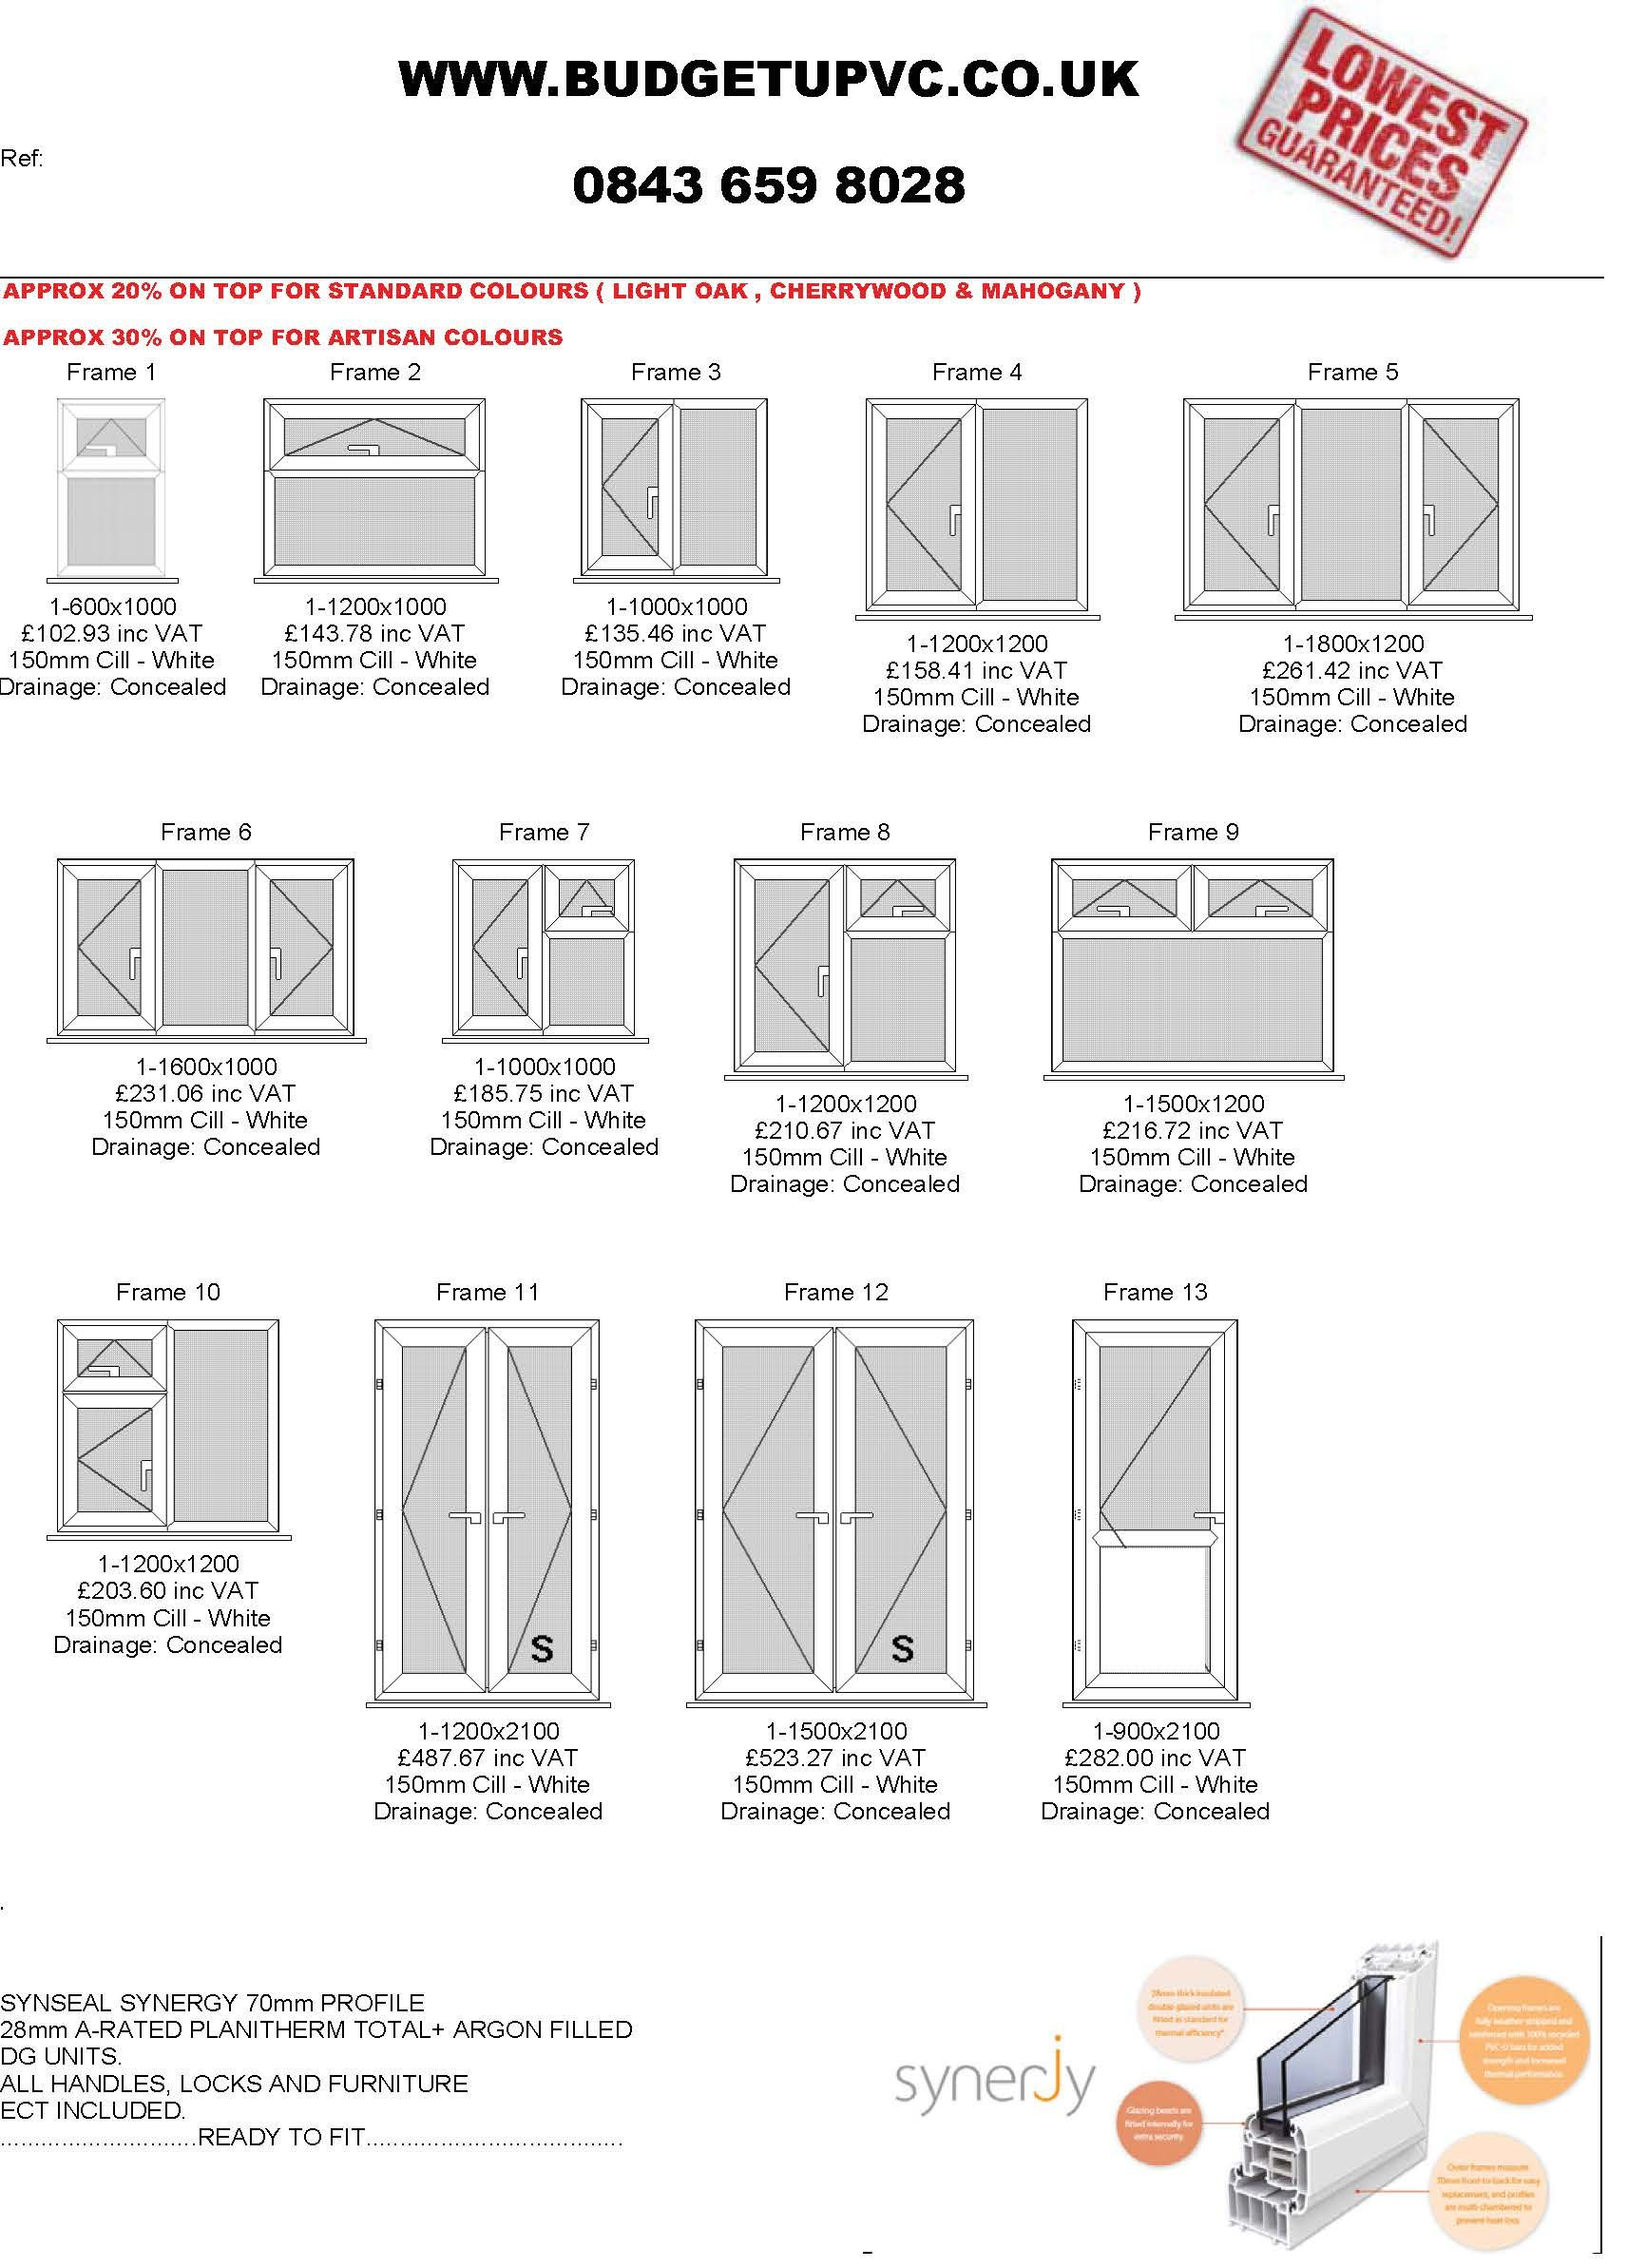 Fantastic Discounts On Trade Upvc Windows And Supply Only Windows Windows And Doors Upvc Window Grill Design Modern